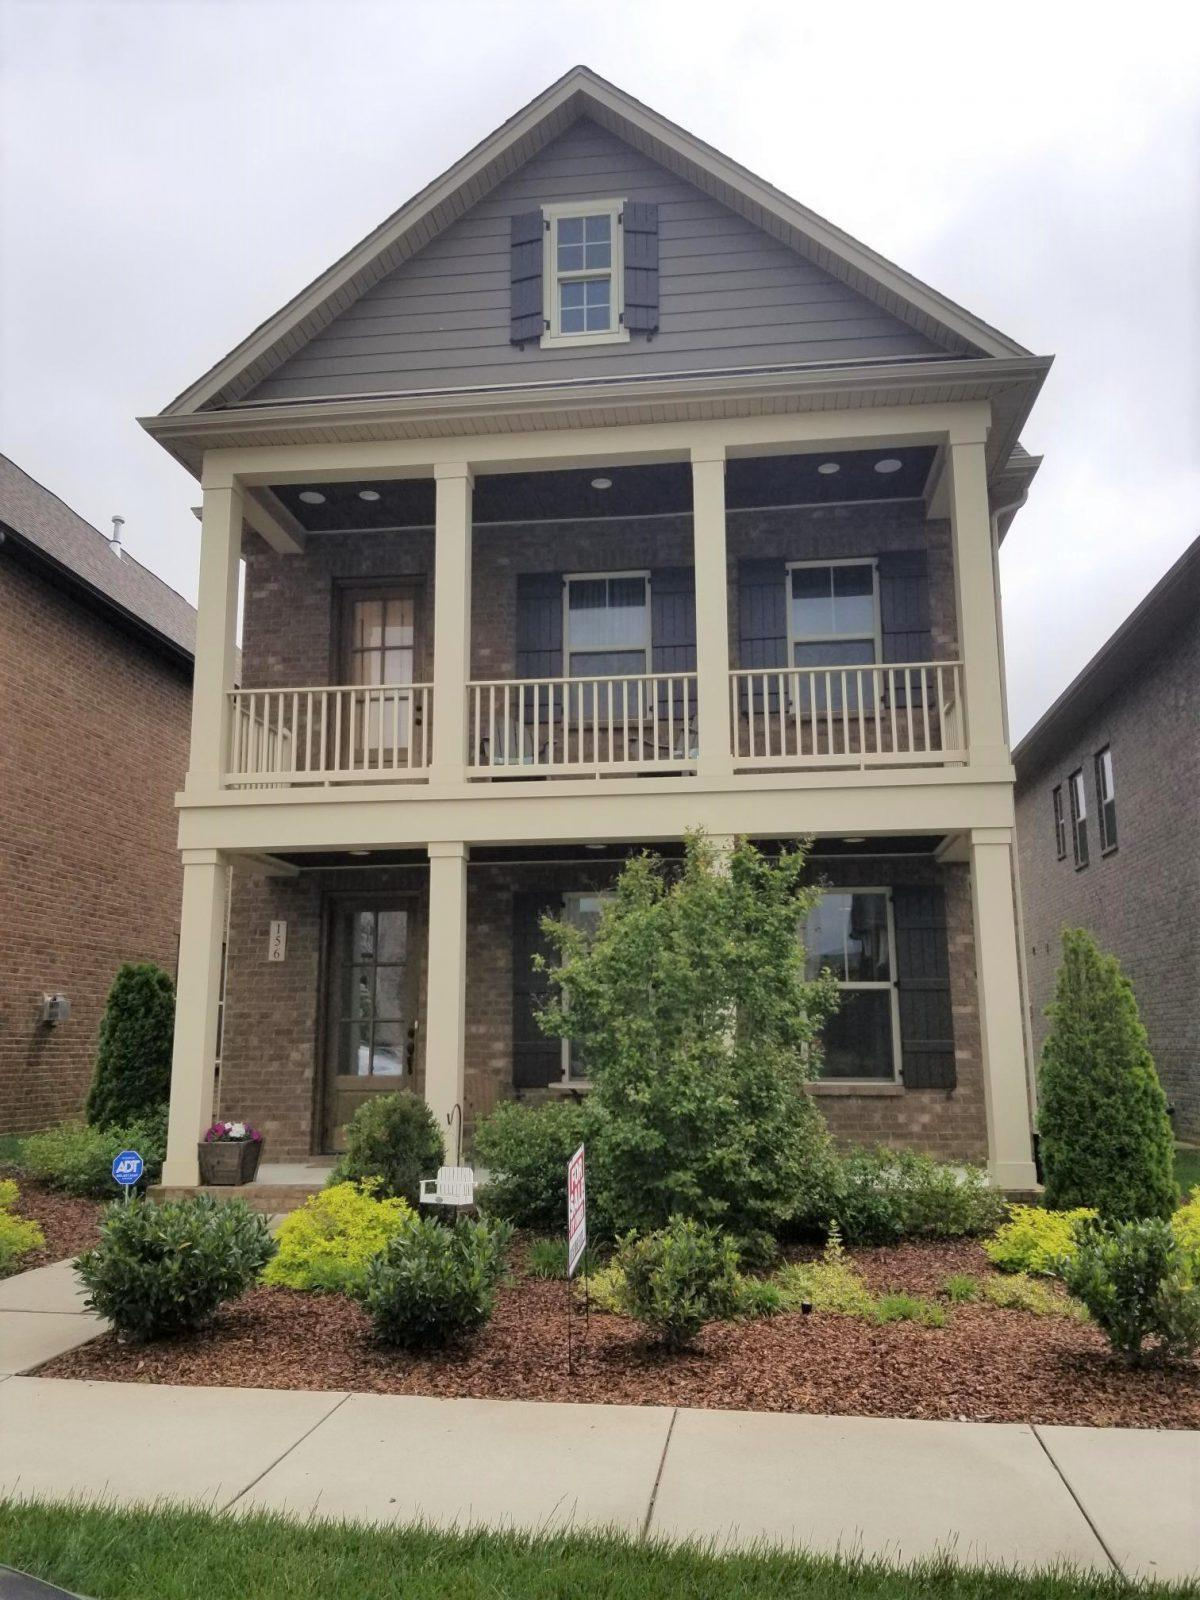 156 Ashcrest Pt, Hendersonville in Sumner County County, TN 37075 Home for Sale